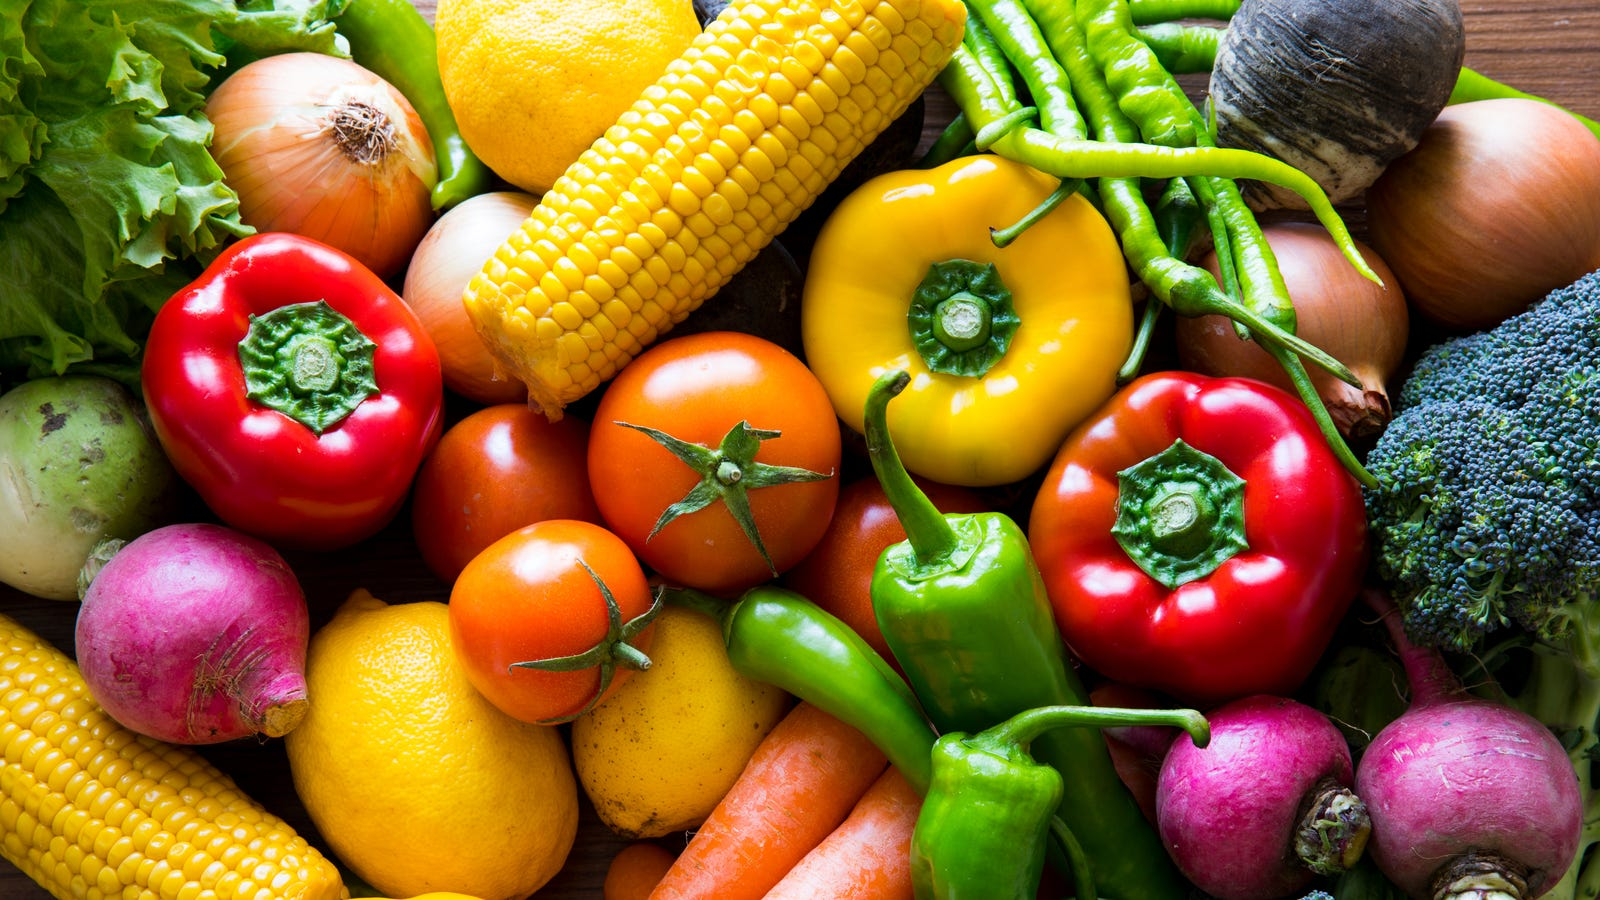 Eating Fruits and Vegetables Is More Important Than Eating Organic